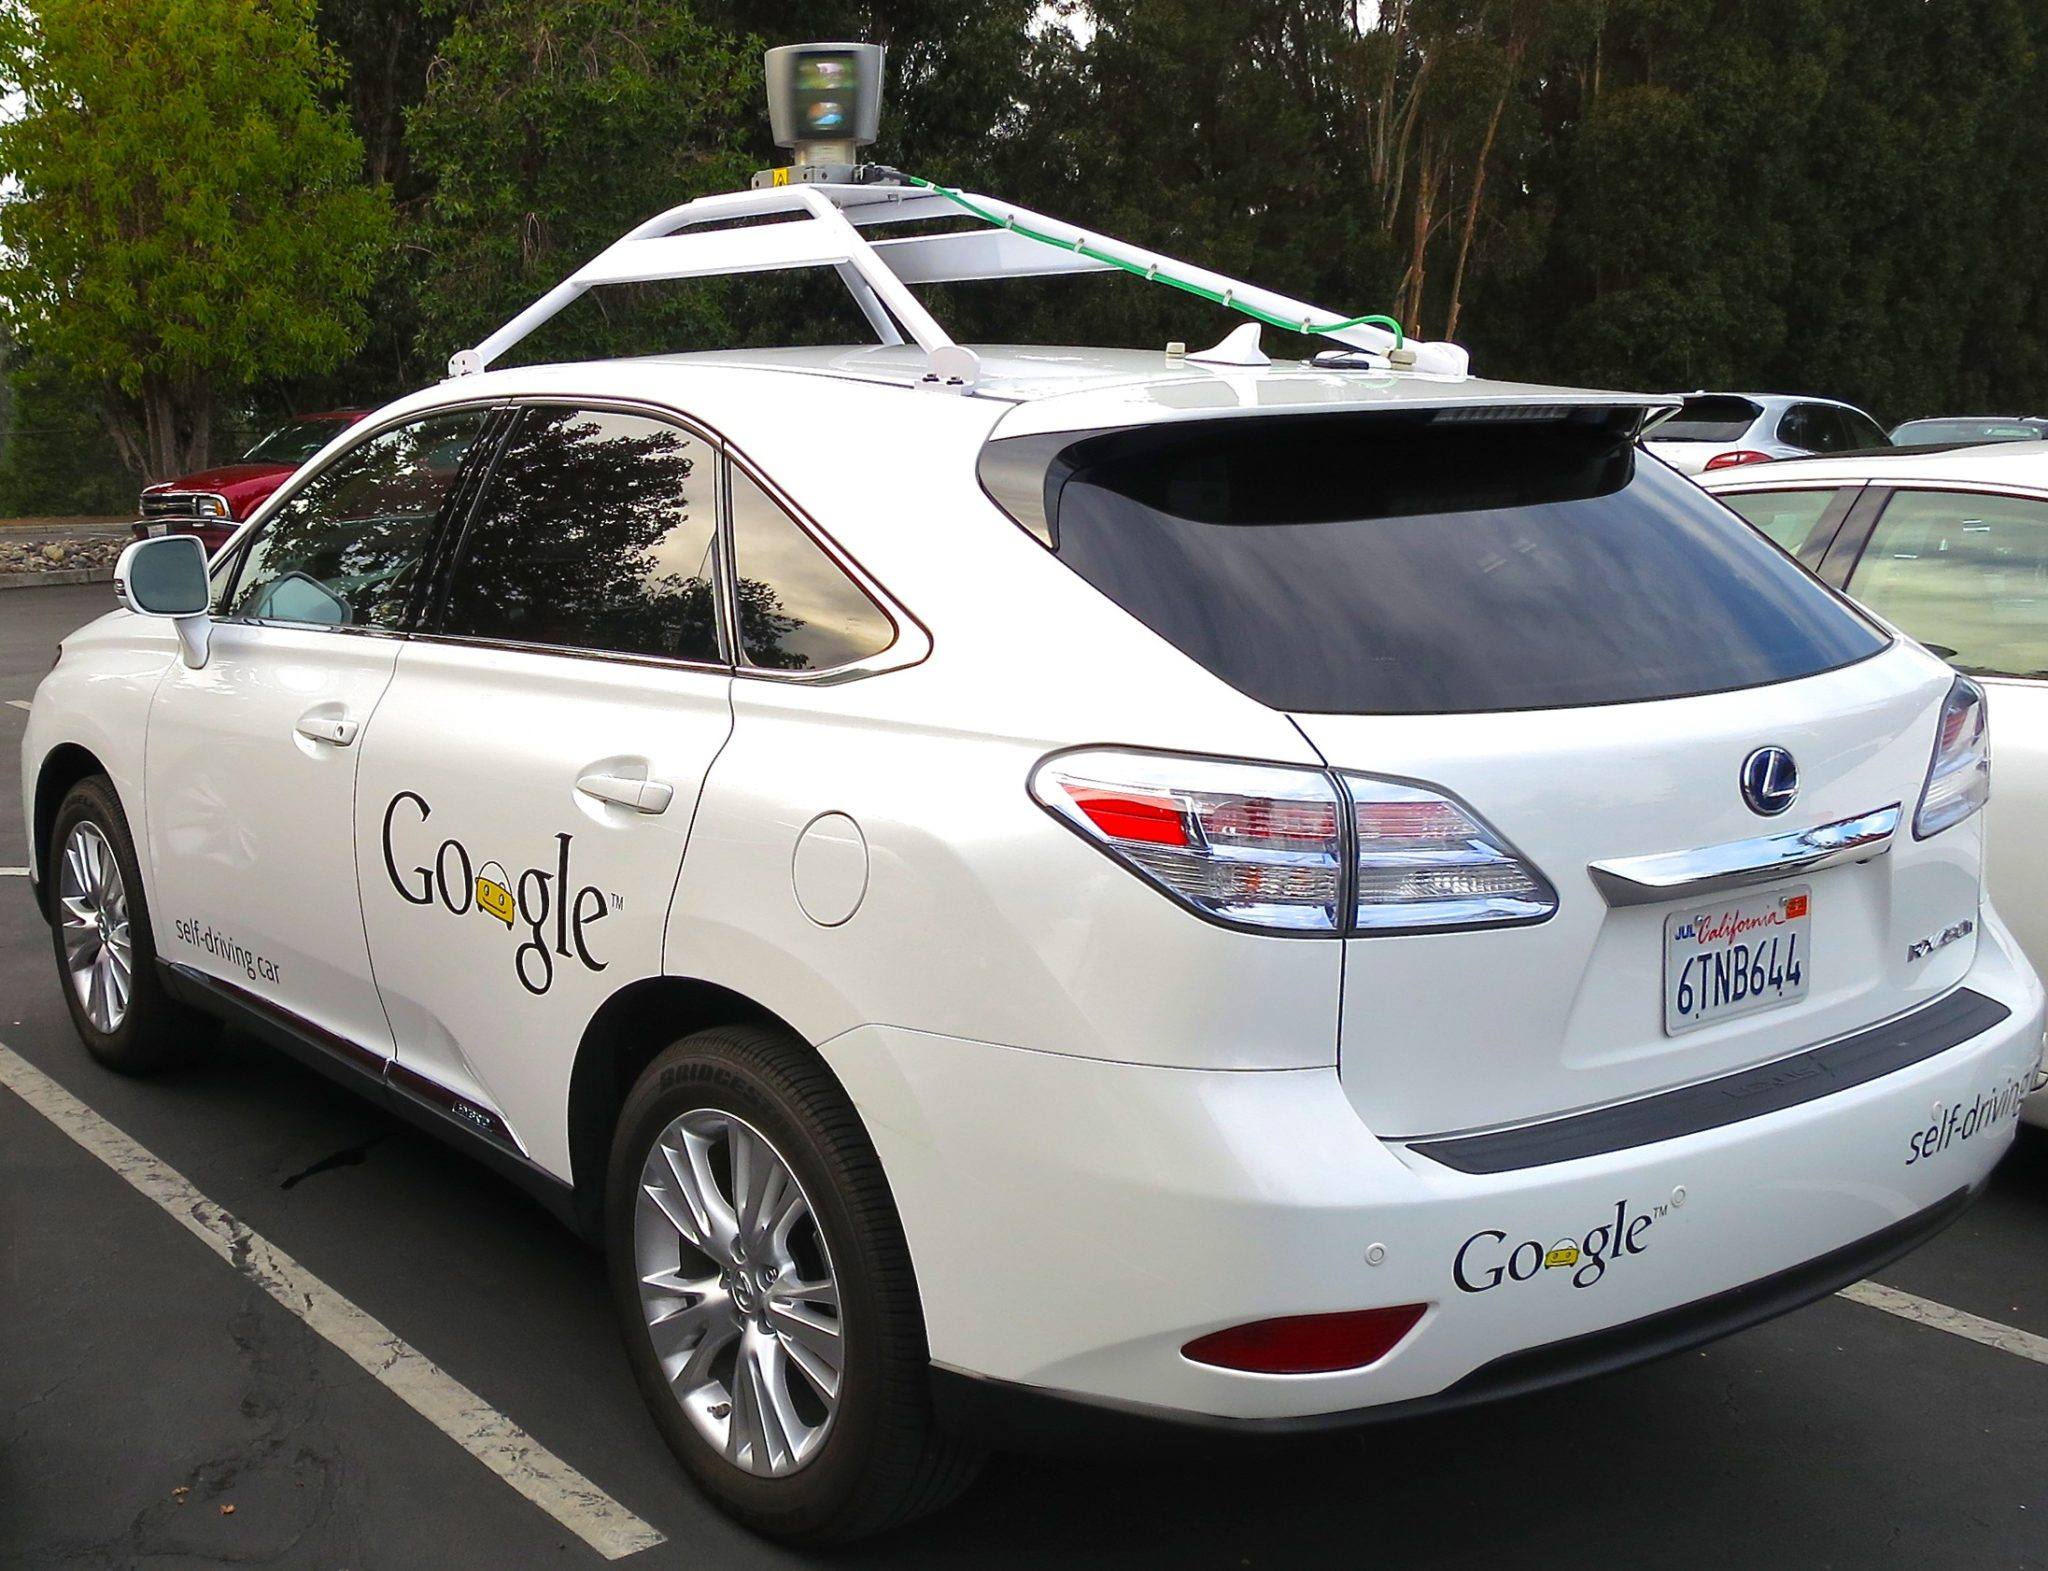 Enjoy the Ride: The Rise of the Driverless Car